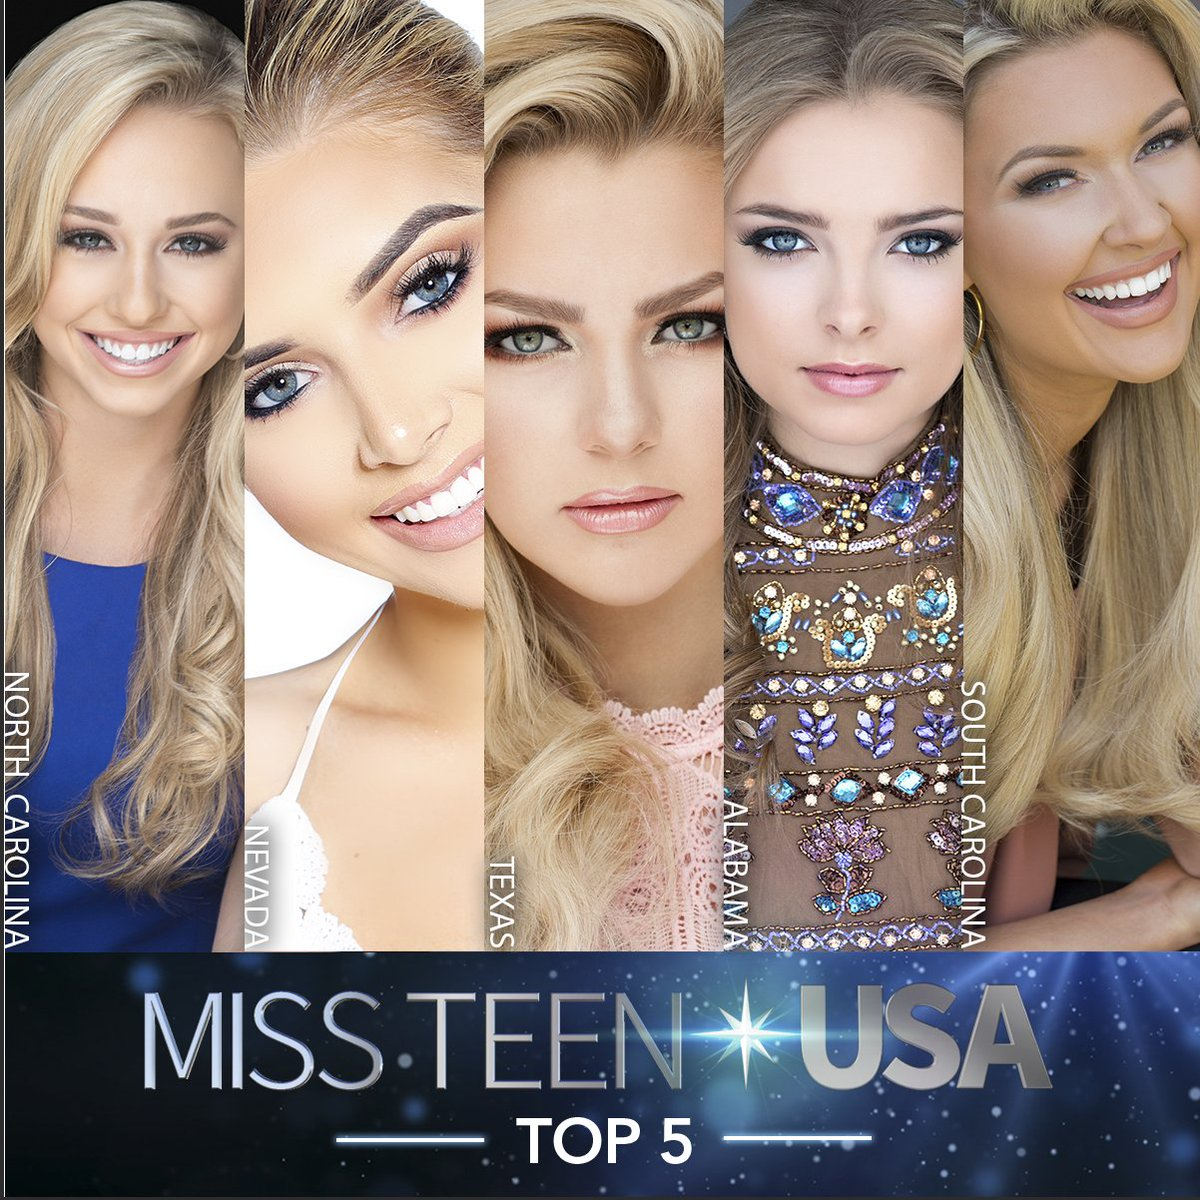 miss teen usa on these are your top missteenusa  miss teen usa on these are your top 5 missteenusa contestants